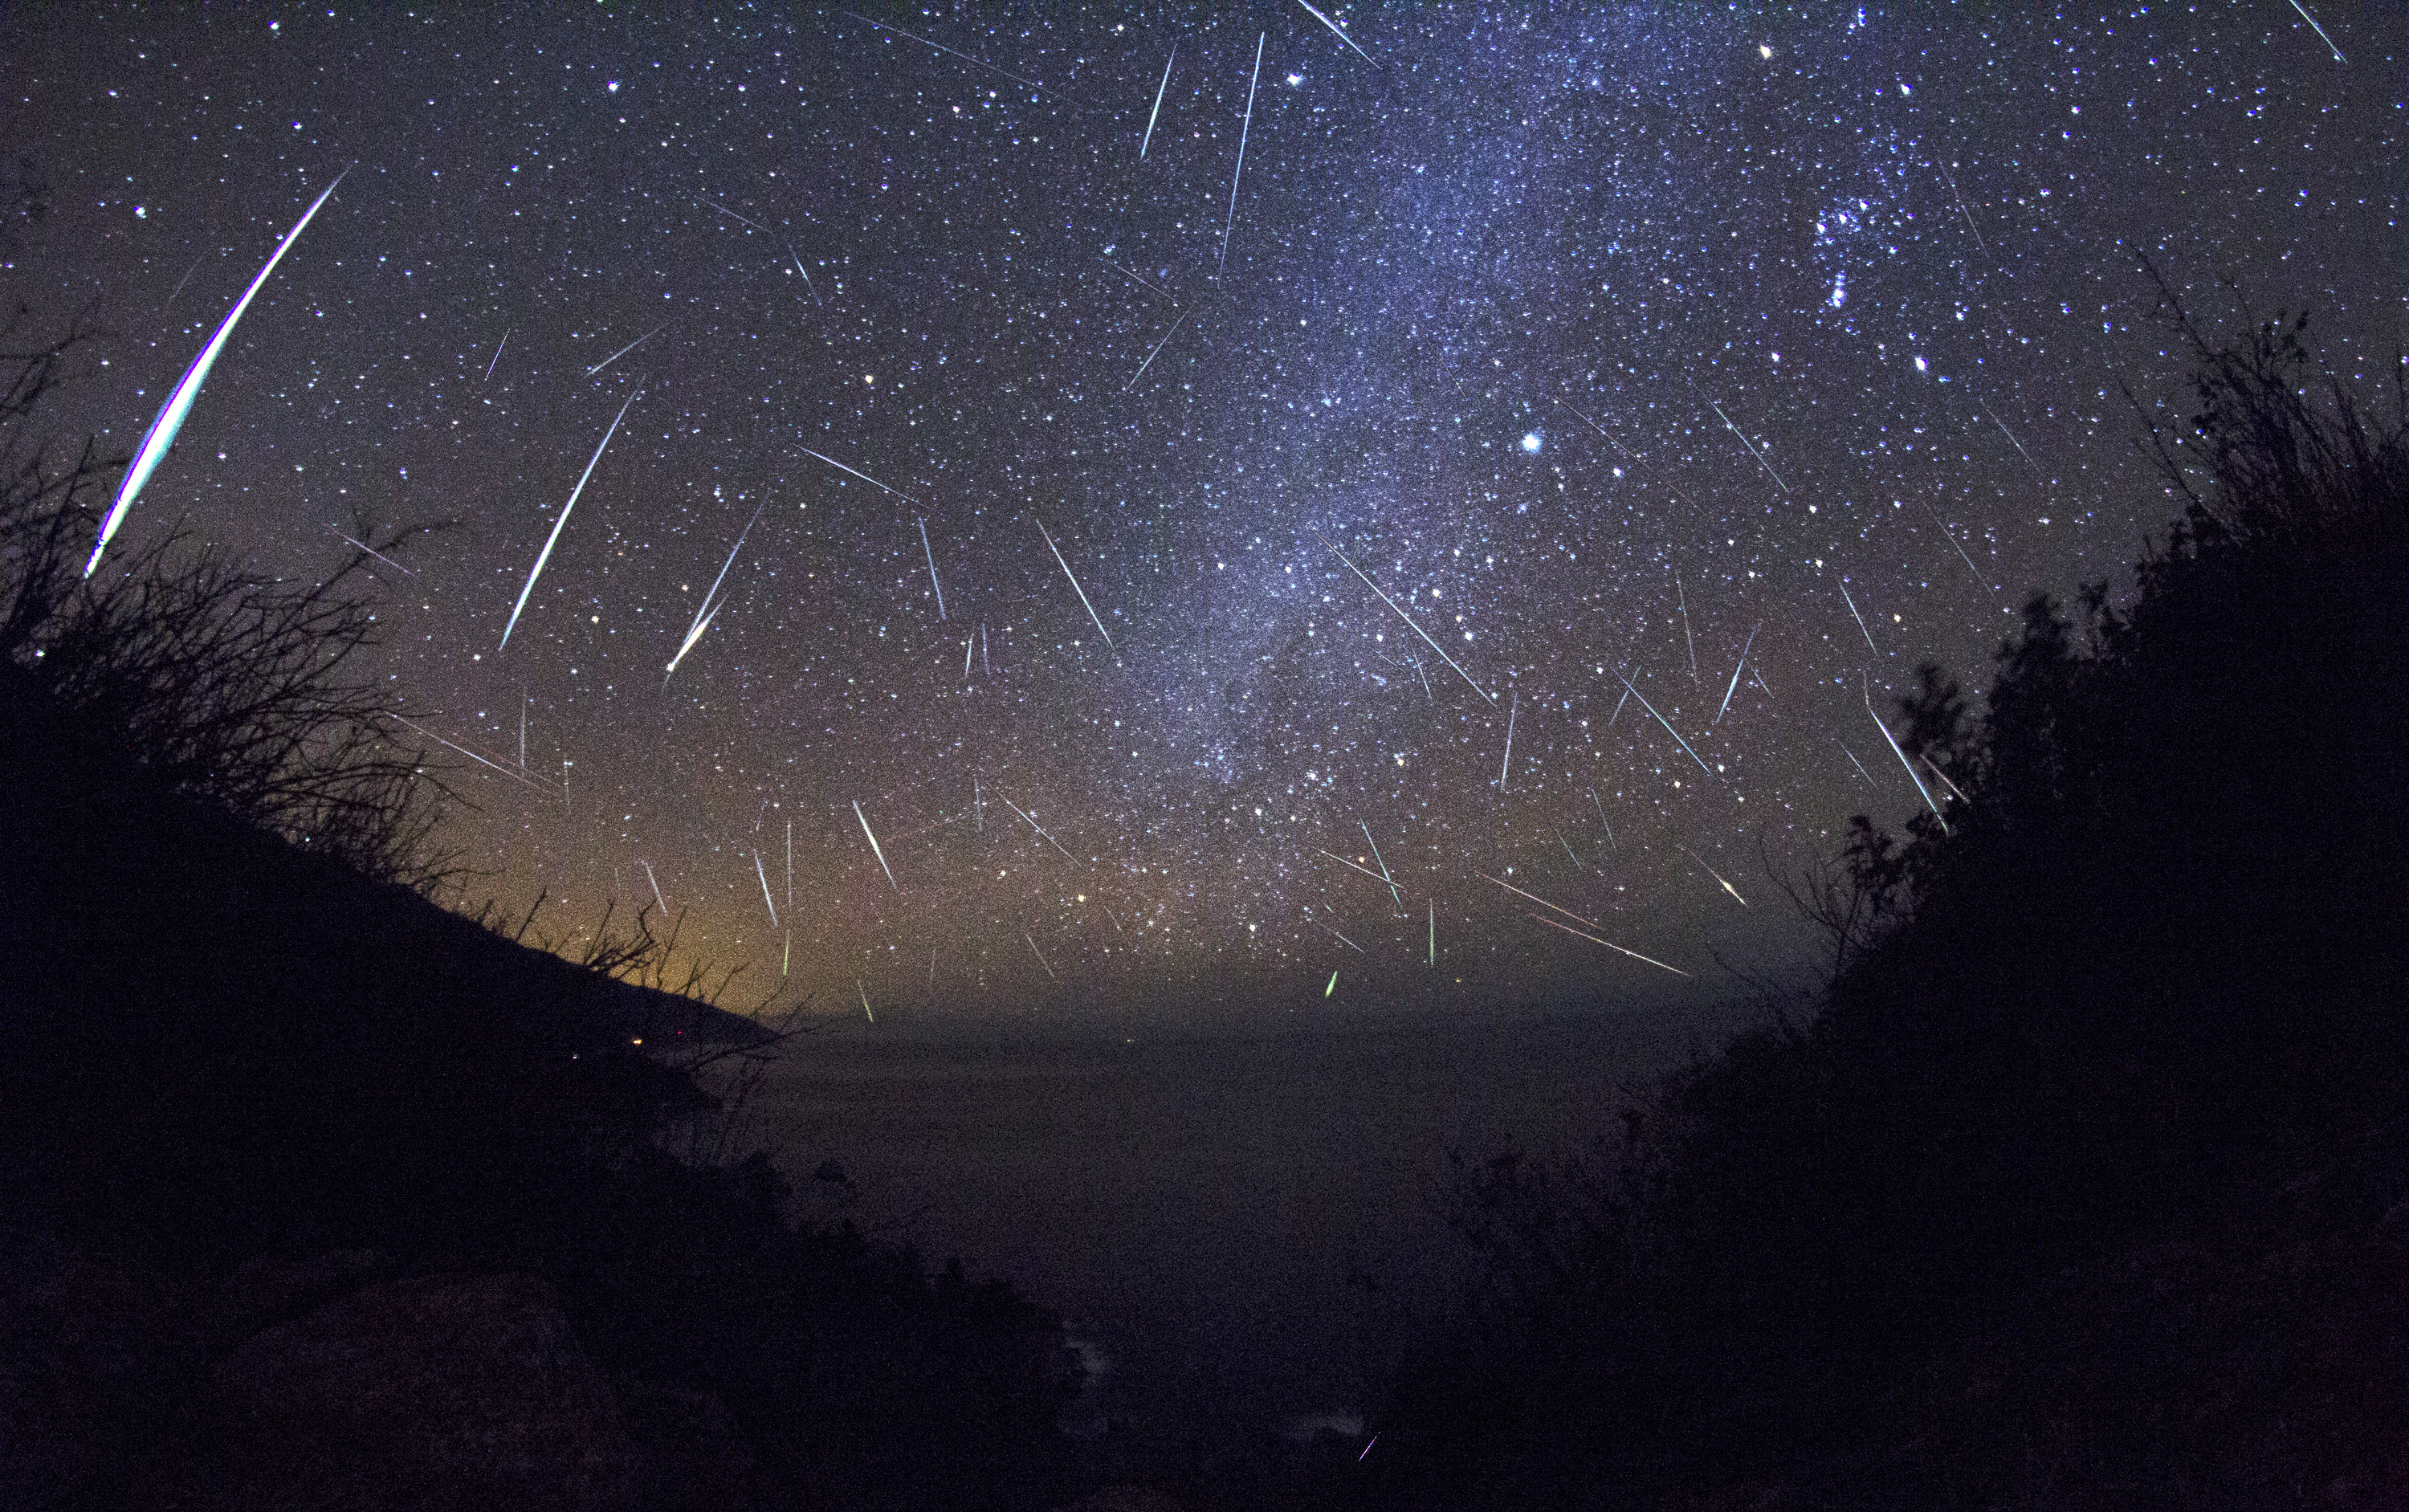 Geminid Meteor Shower Peaks Tonight: How to Watch Live